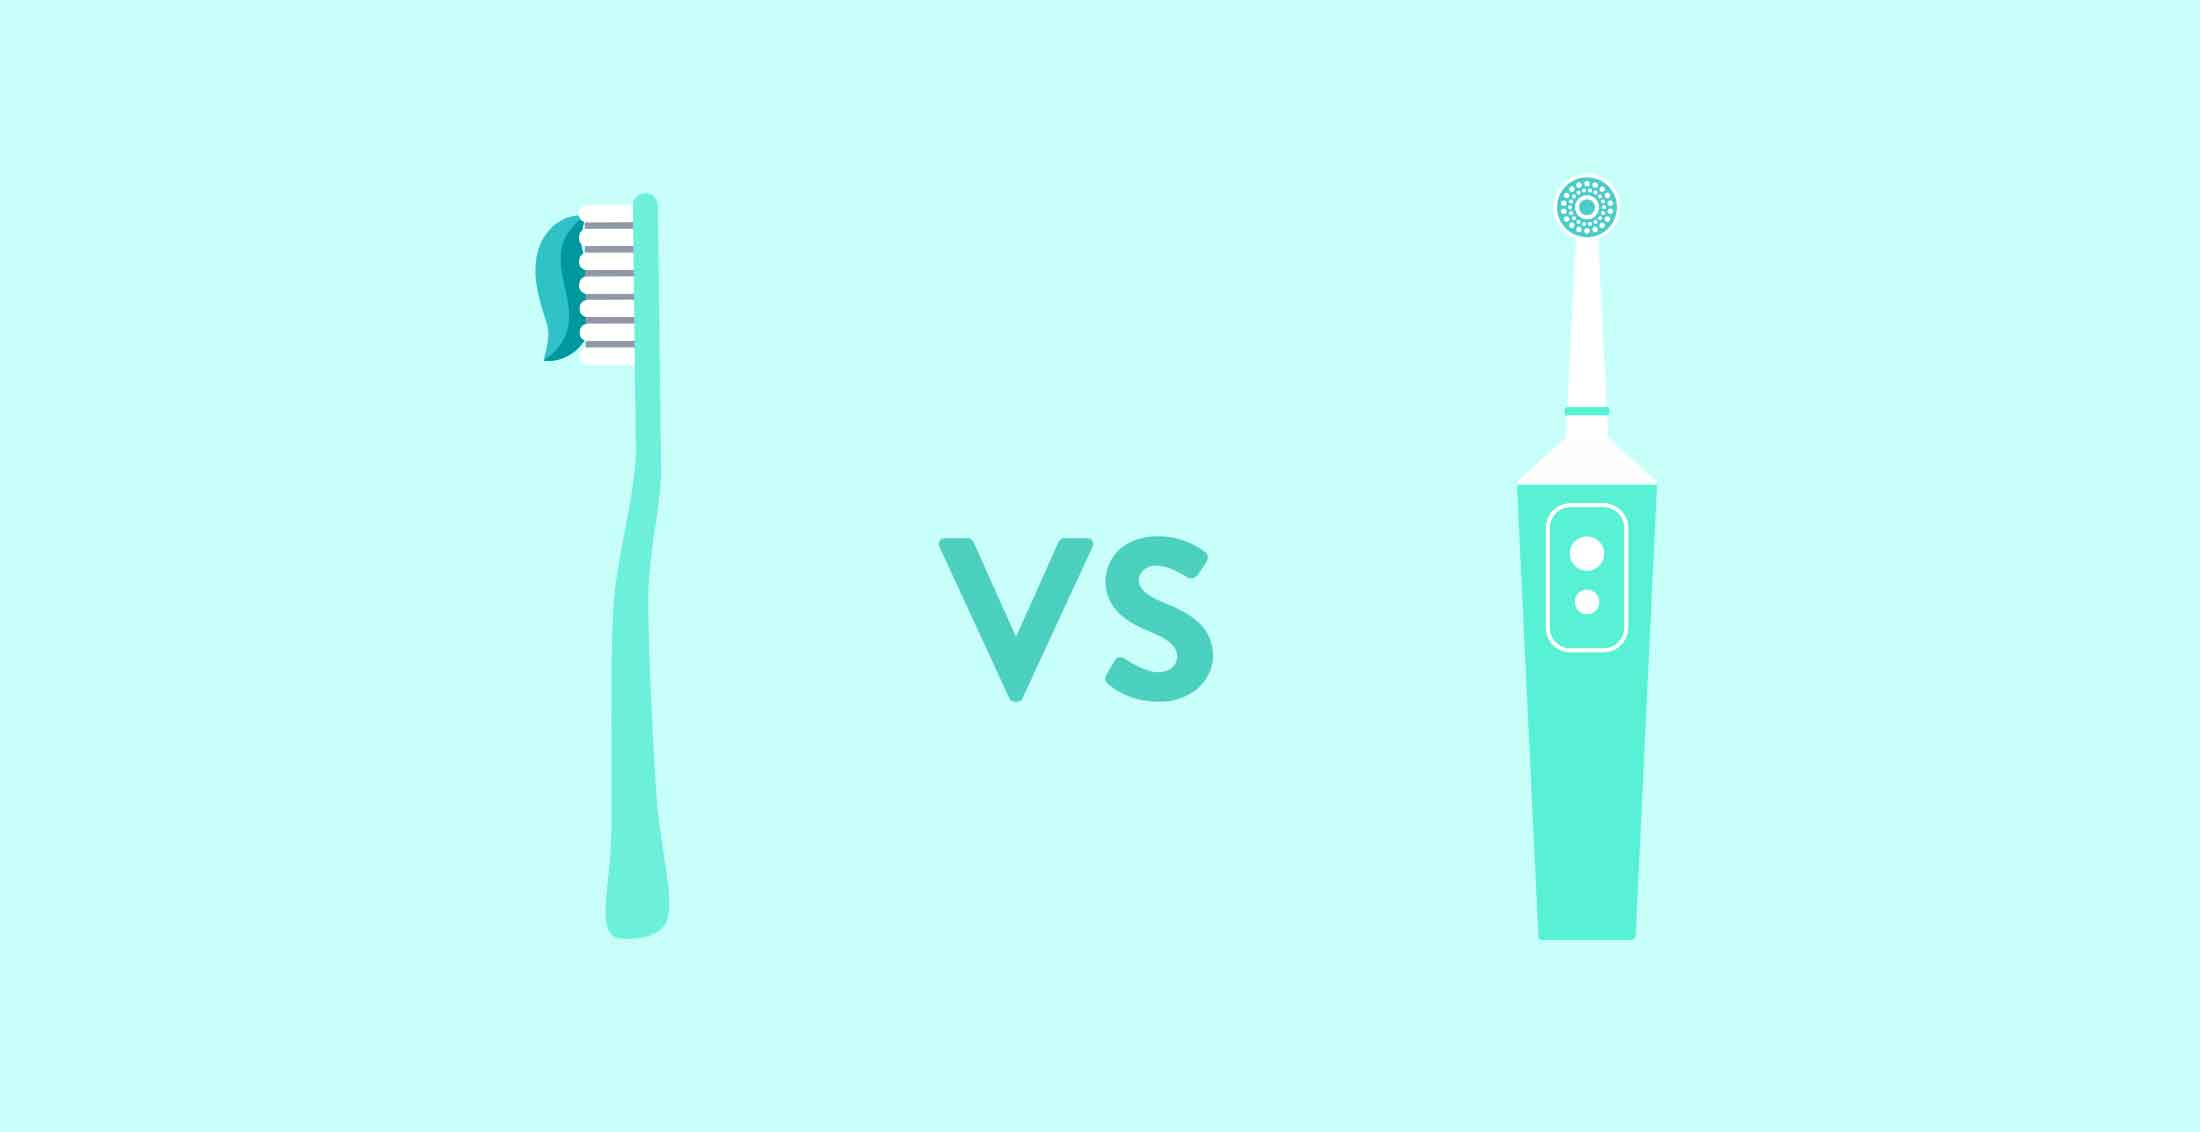 Electric Vs Manual Toothbrush, which one do I use?